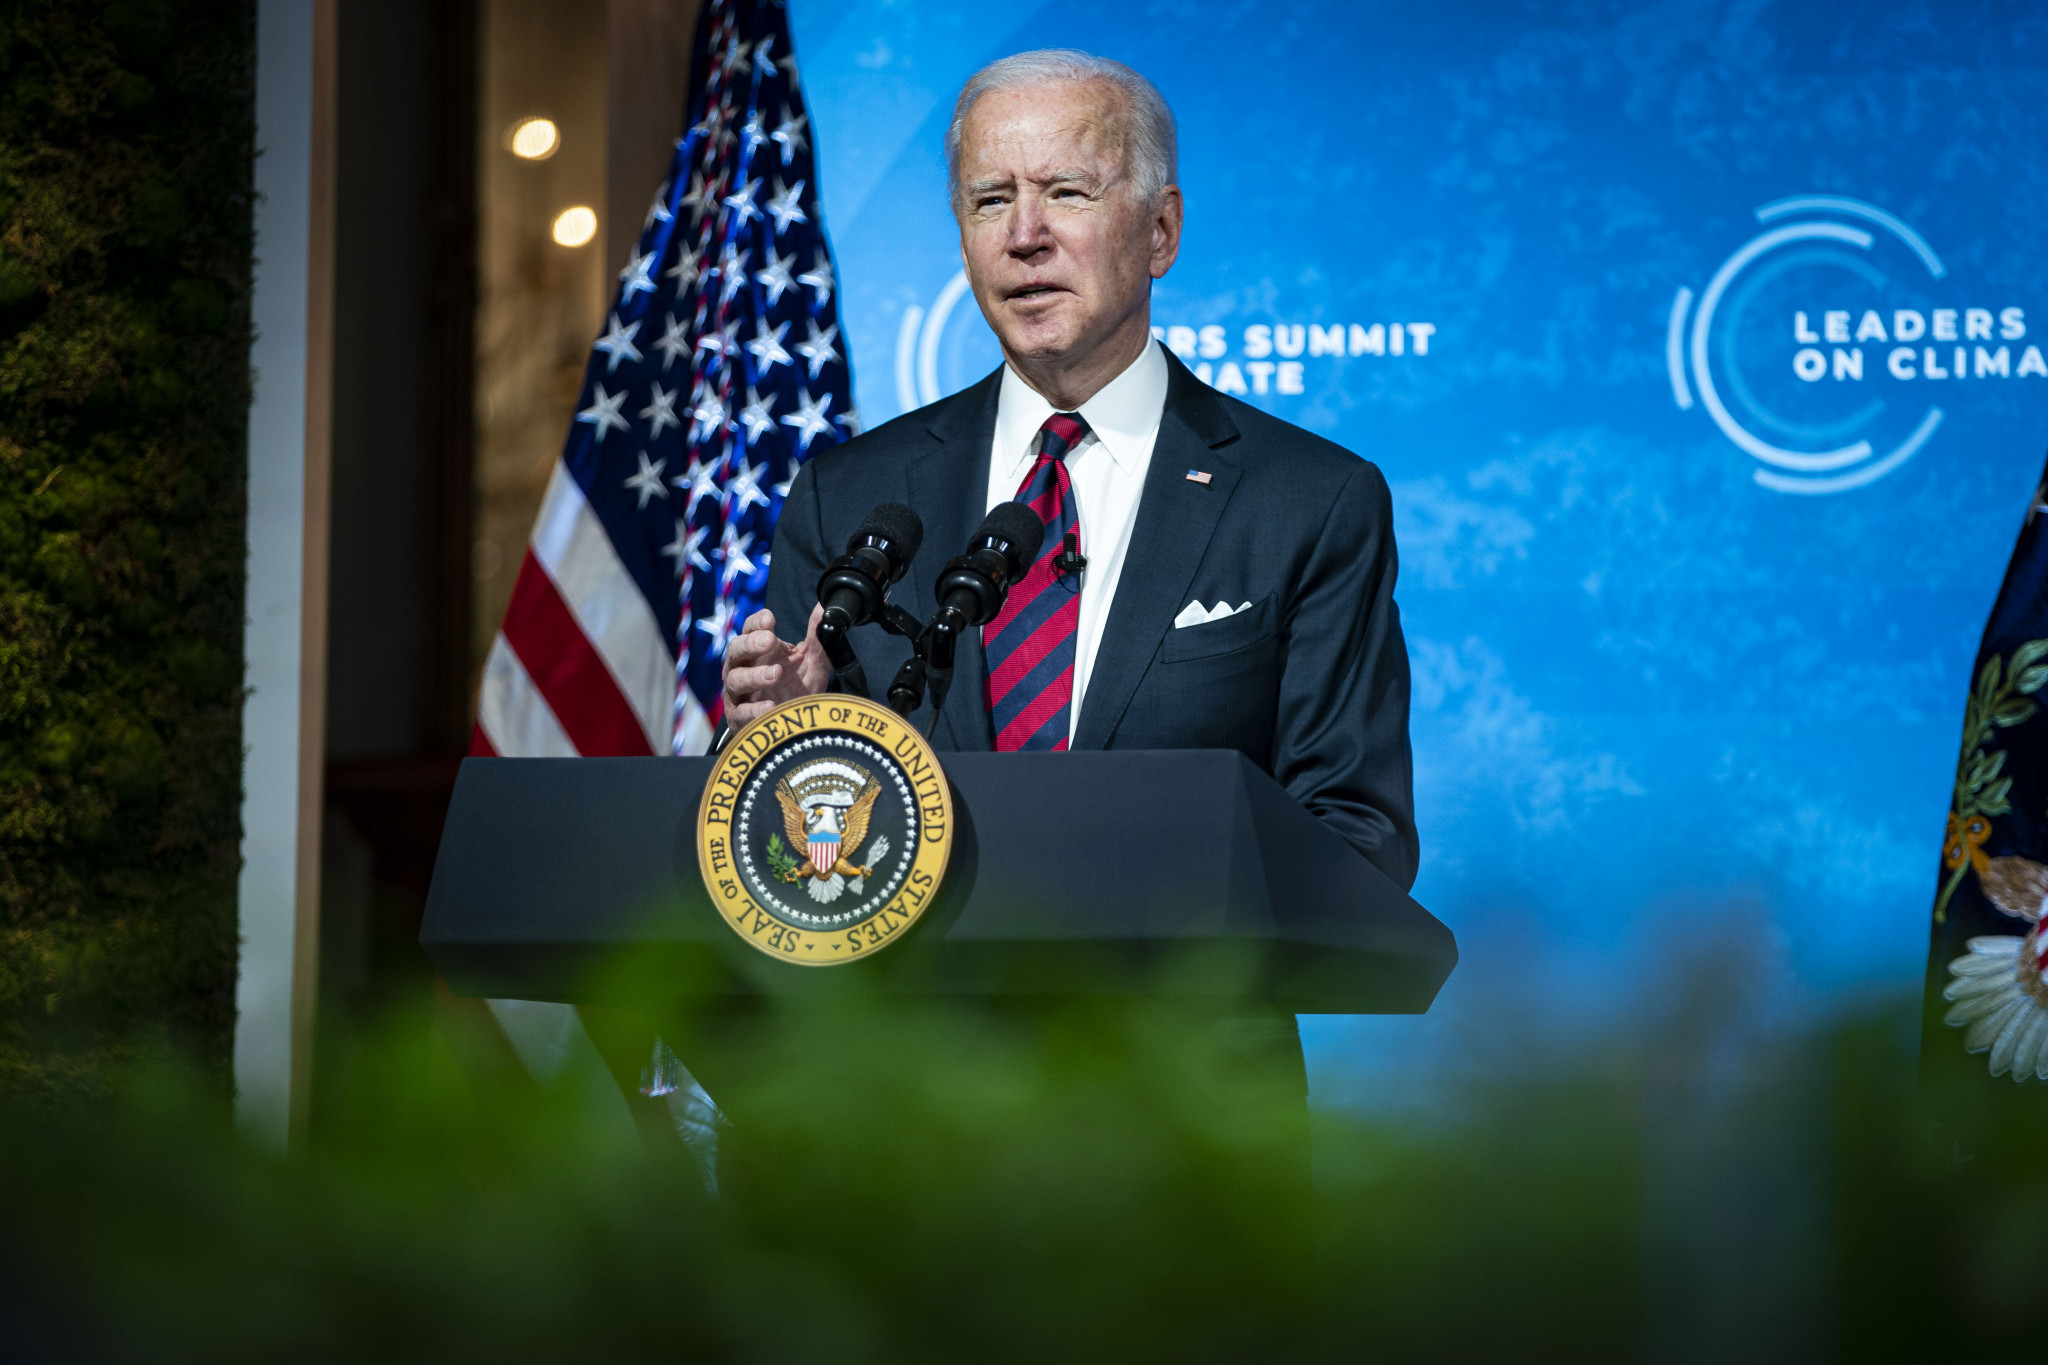 A spokesperson in Washington D.C said US President Joe Biden supports American athletes training for Tokyo 2020 ©Getty Images